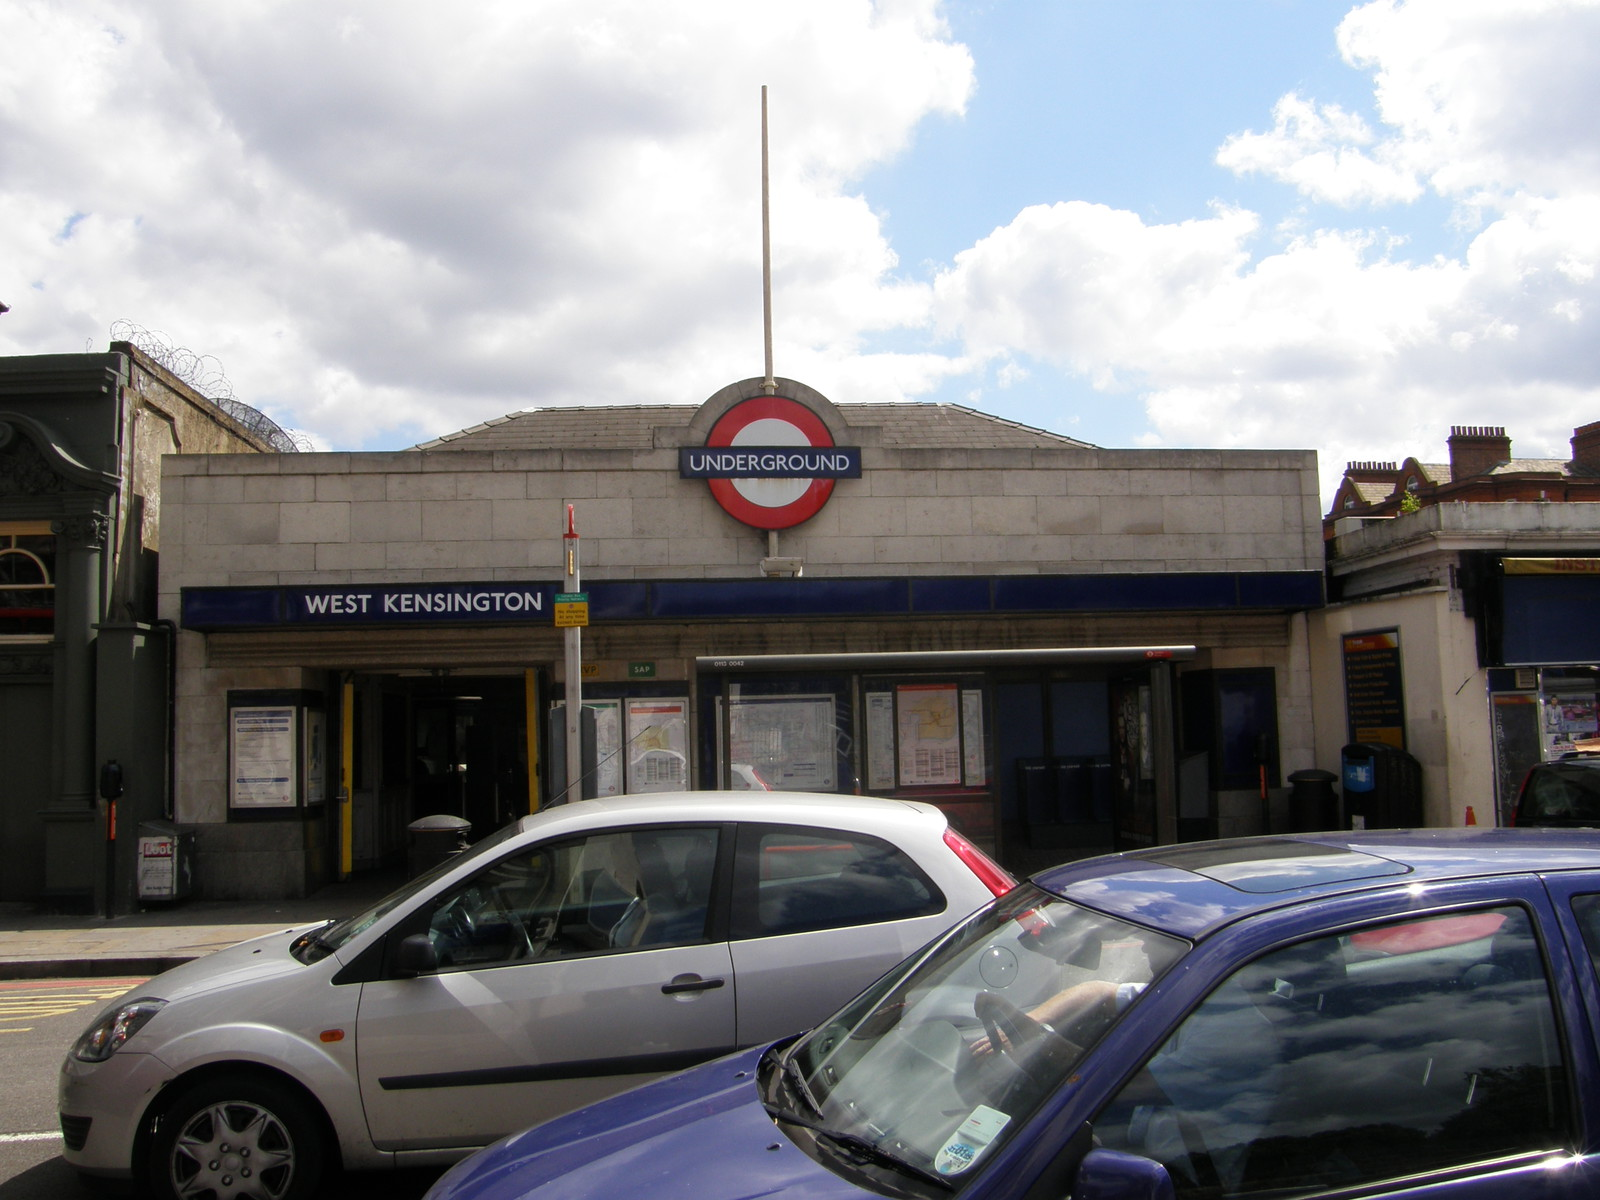 West Kensington station